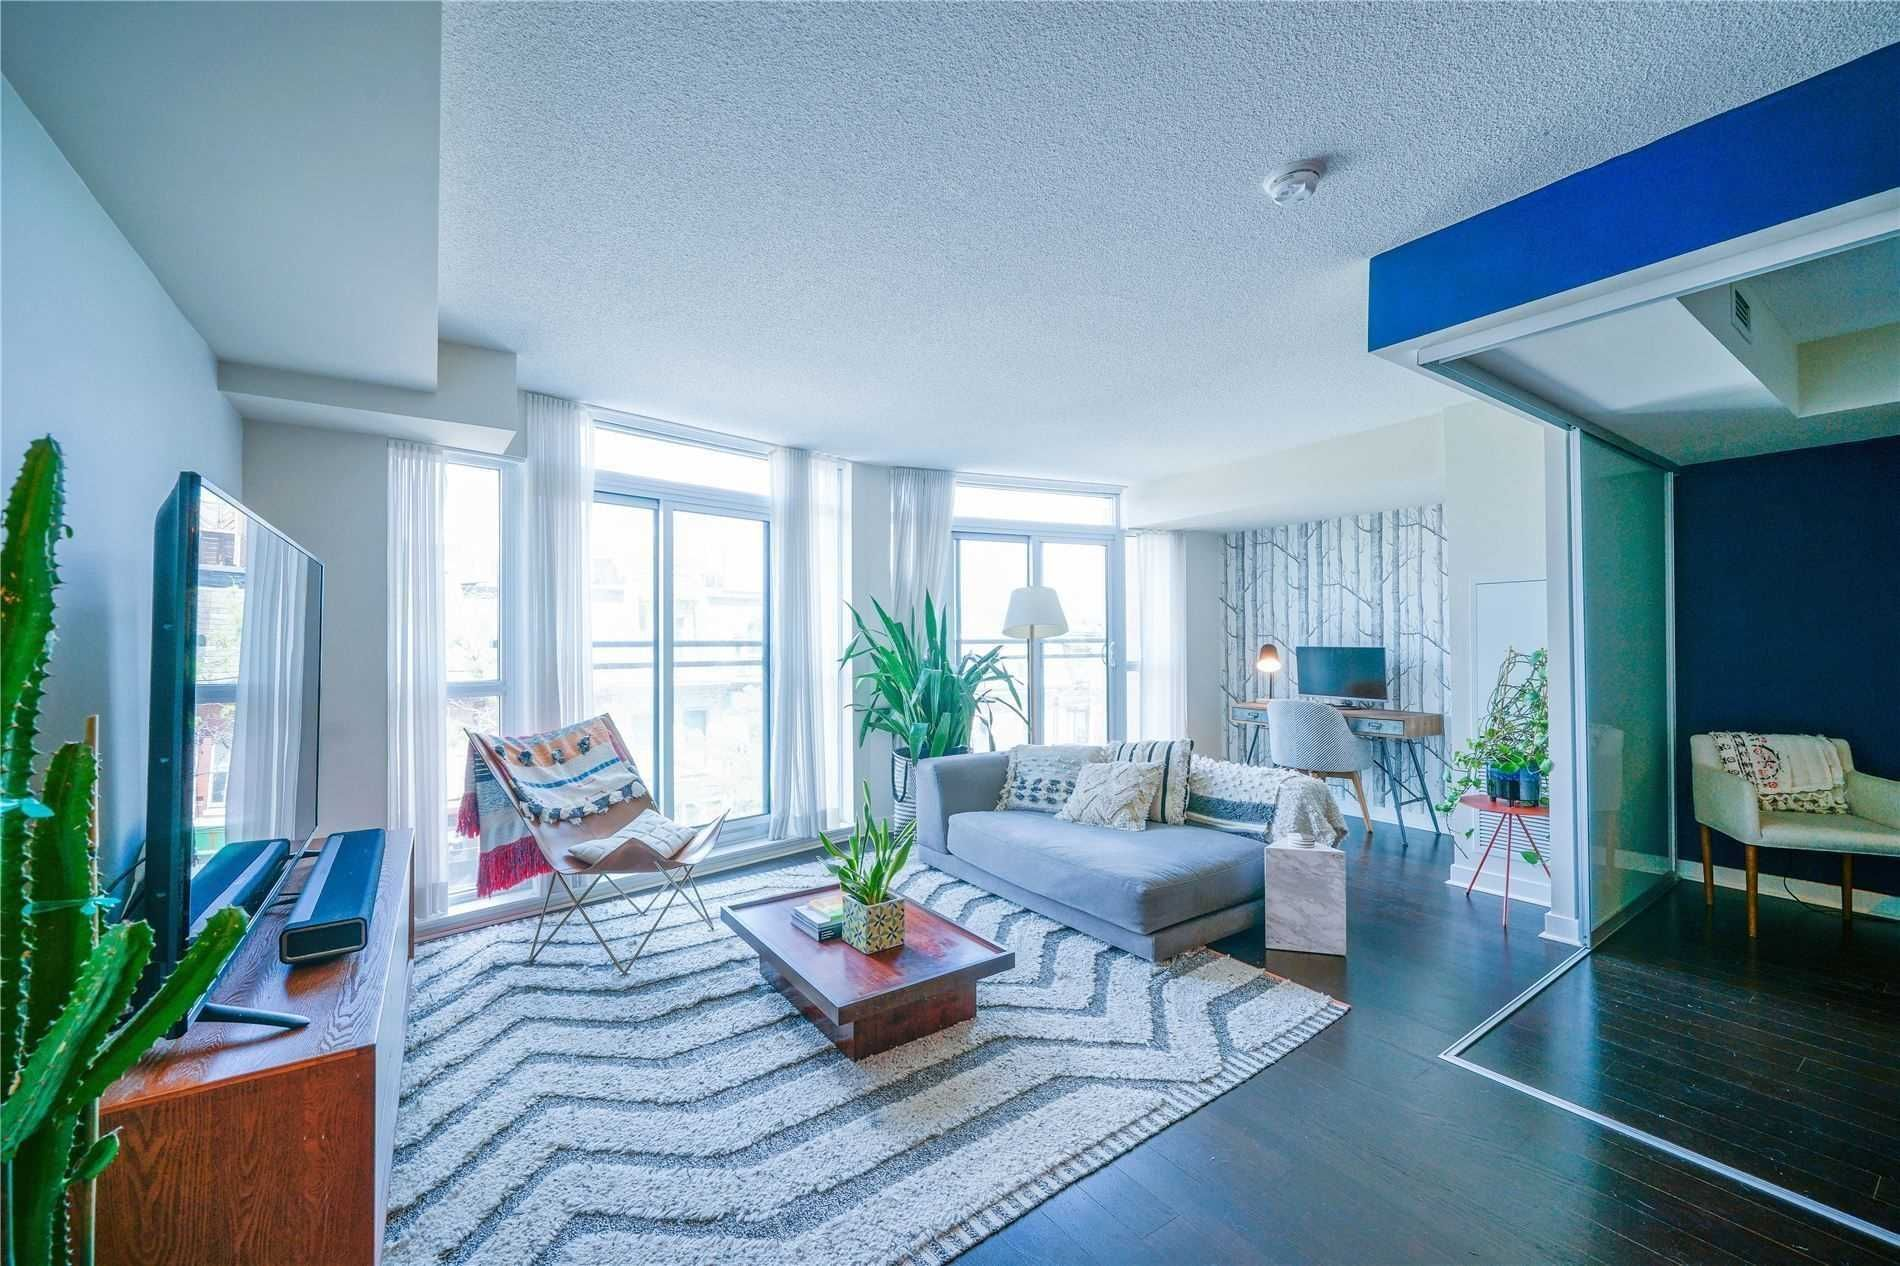 1169 Queen St W, unit 317 for sale in Toronto - image #1